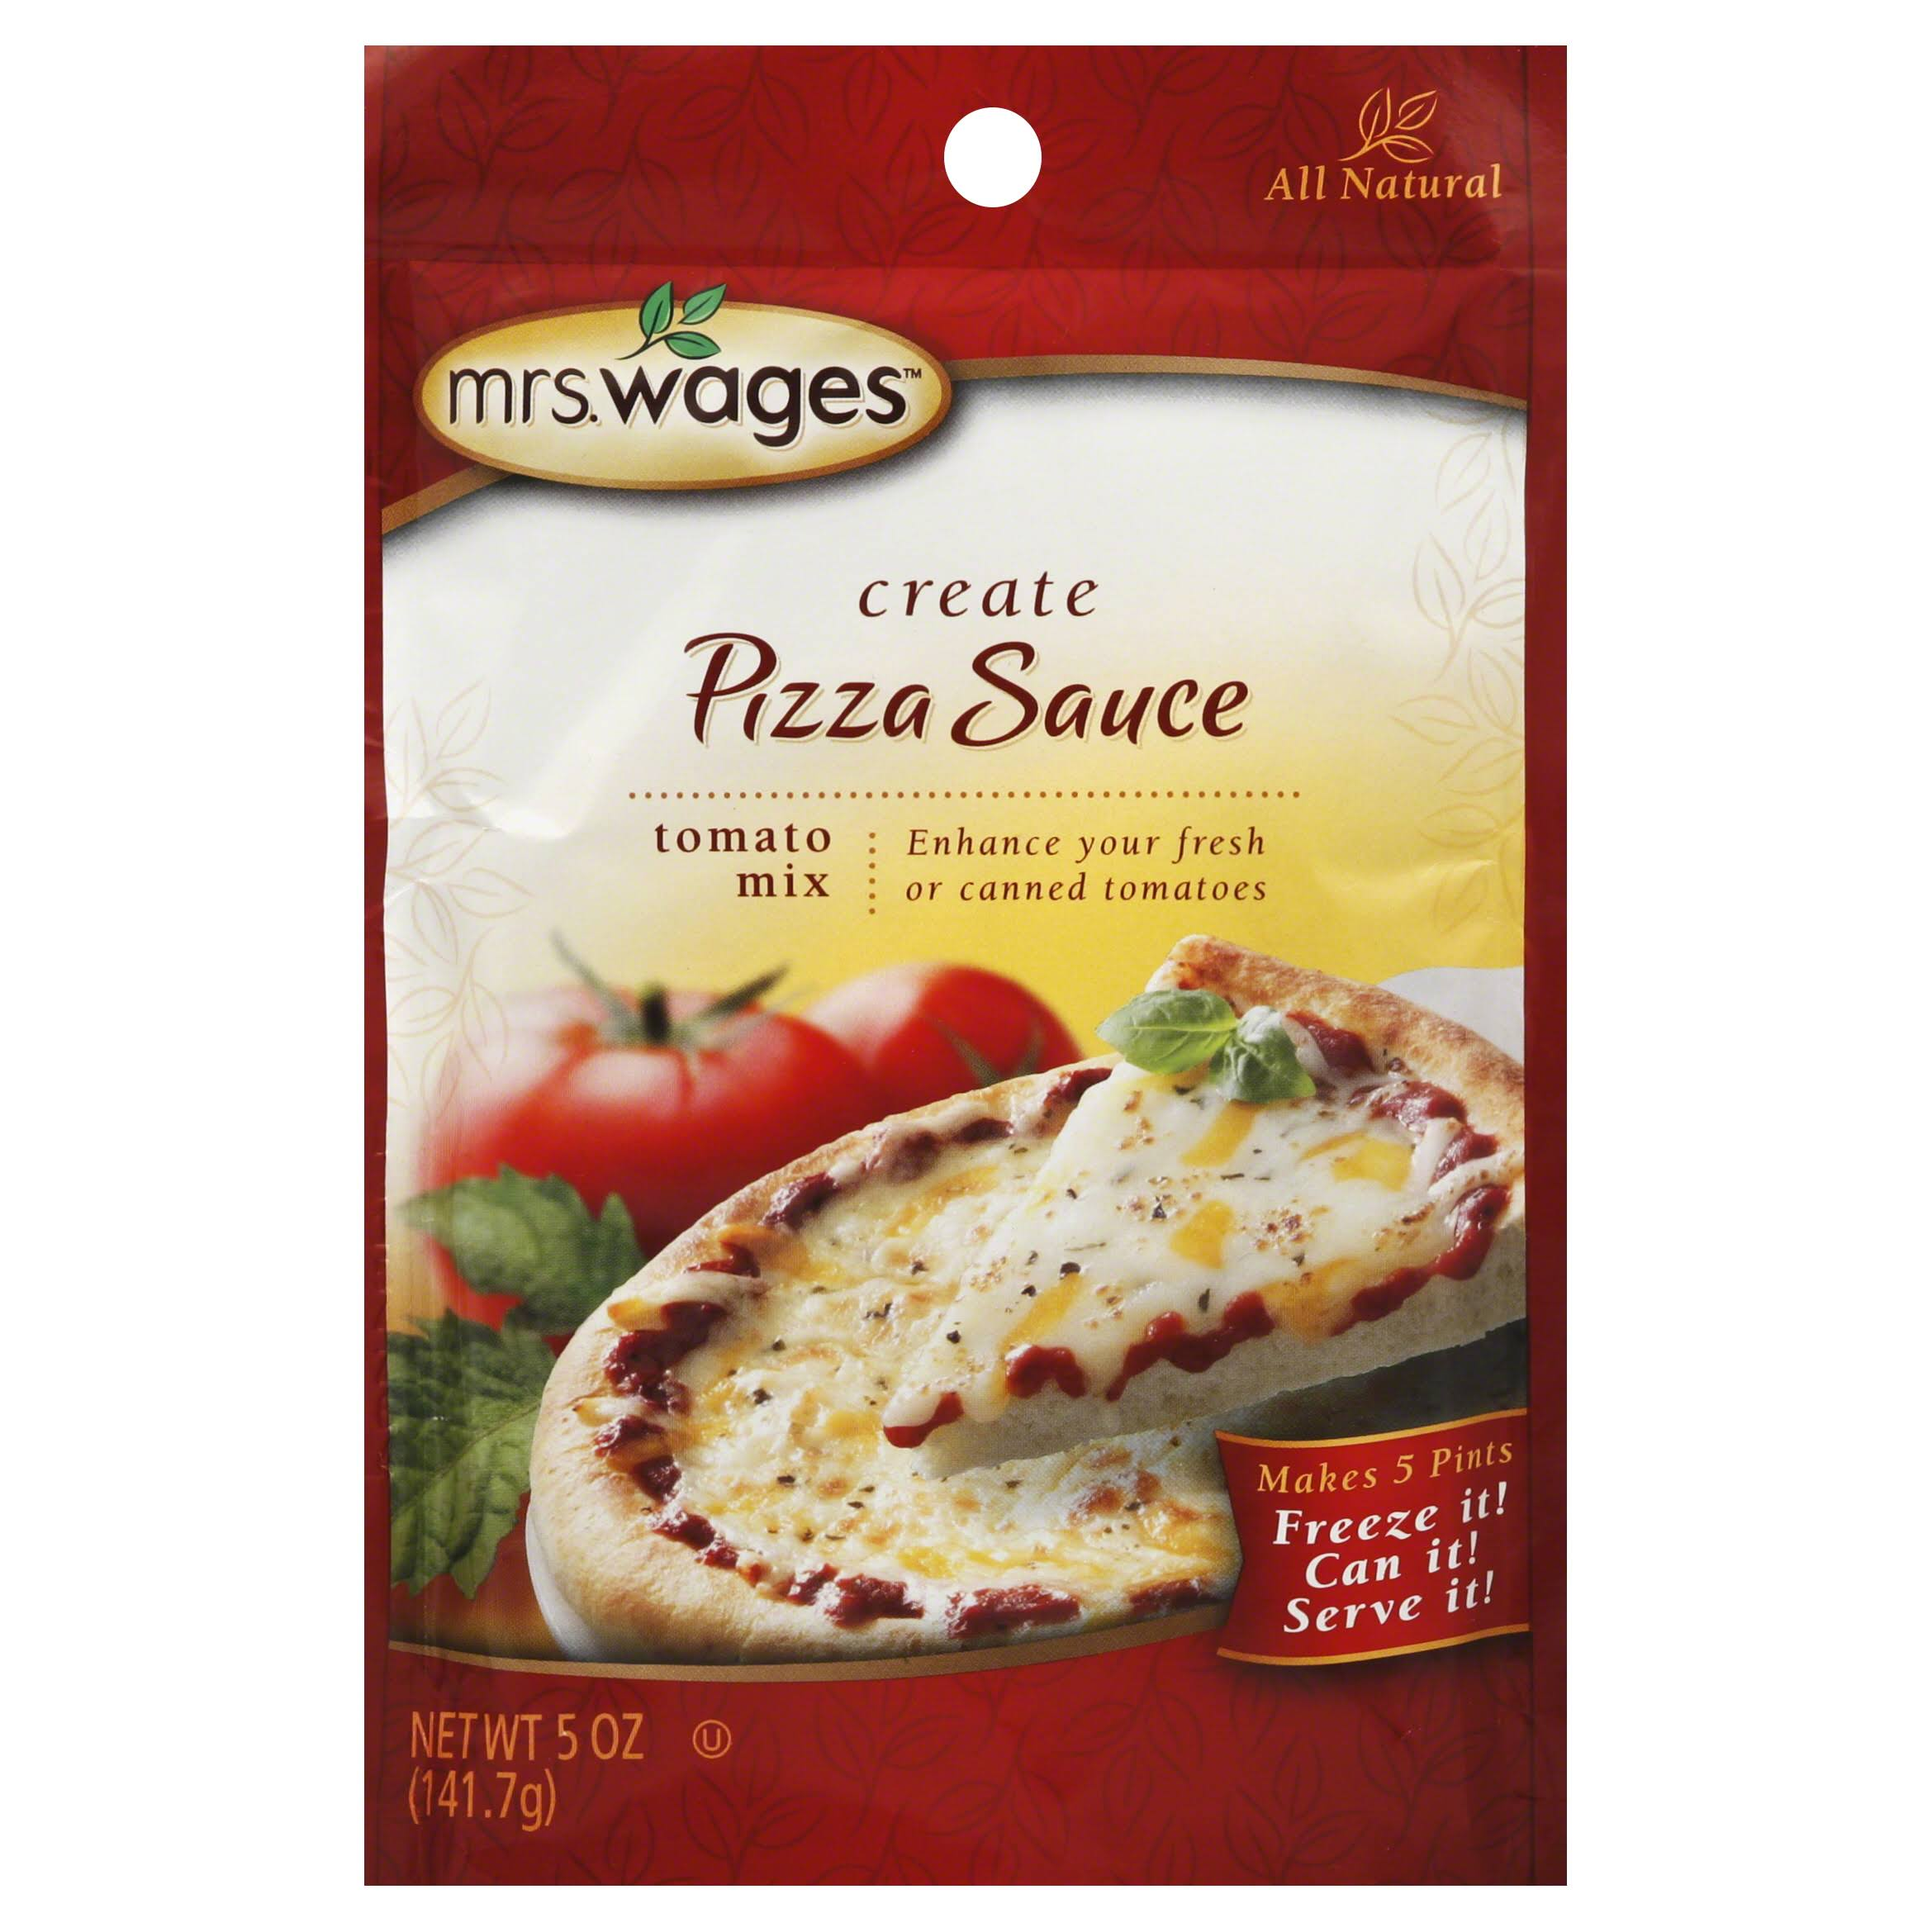 Mrs. Wages Pizza Sauce Tomato Mix - 141.7g